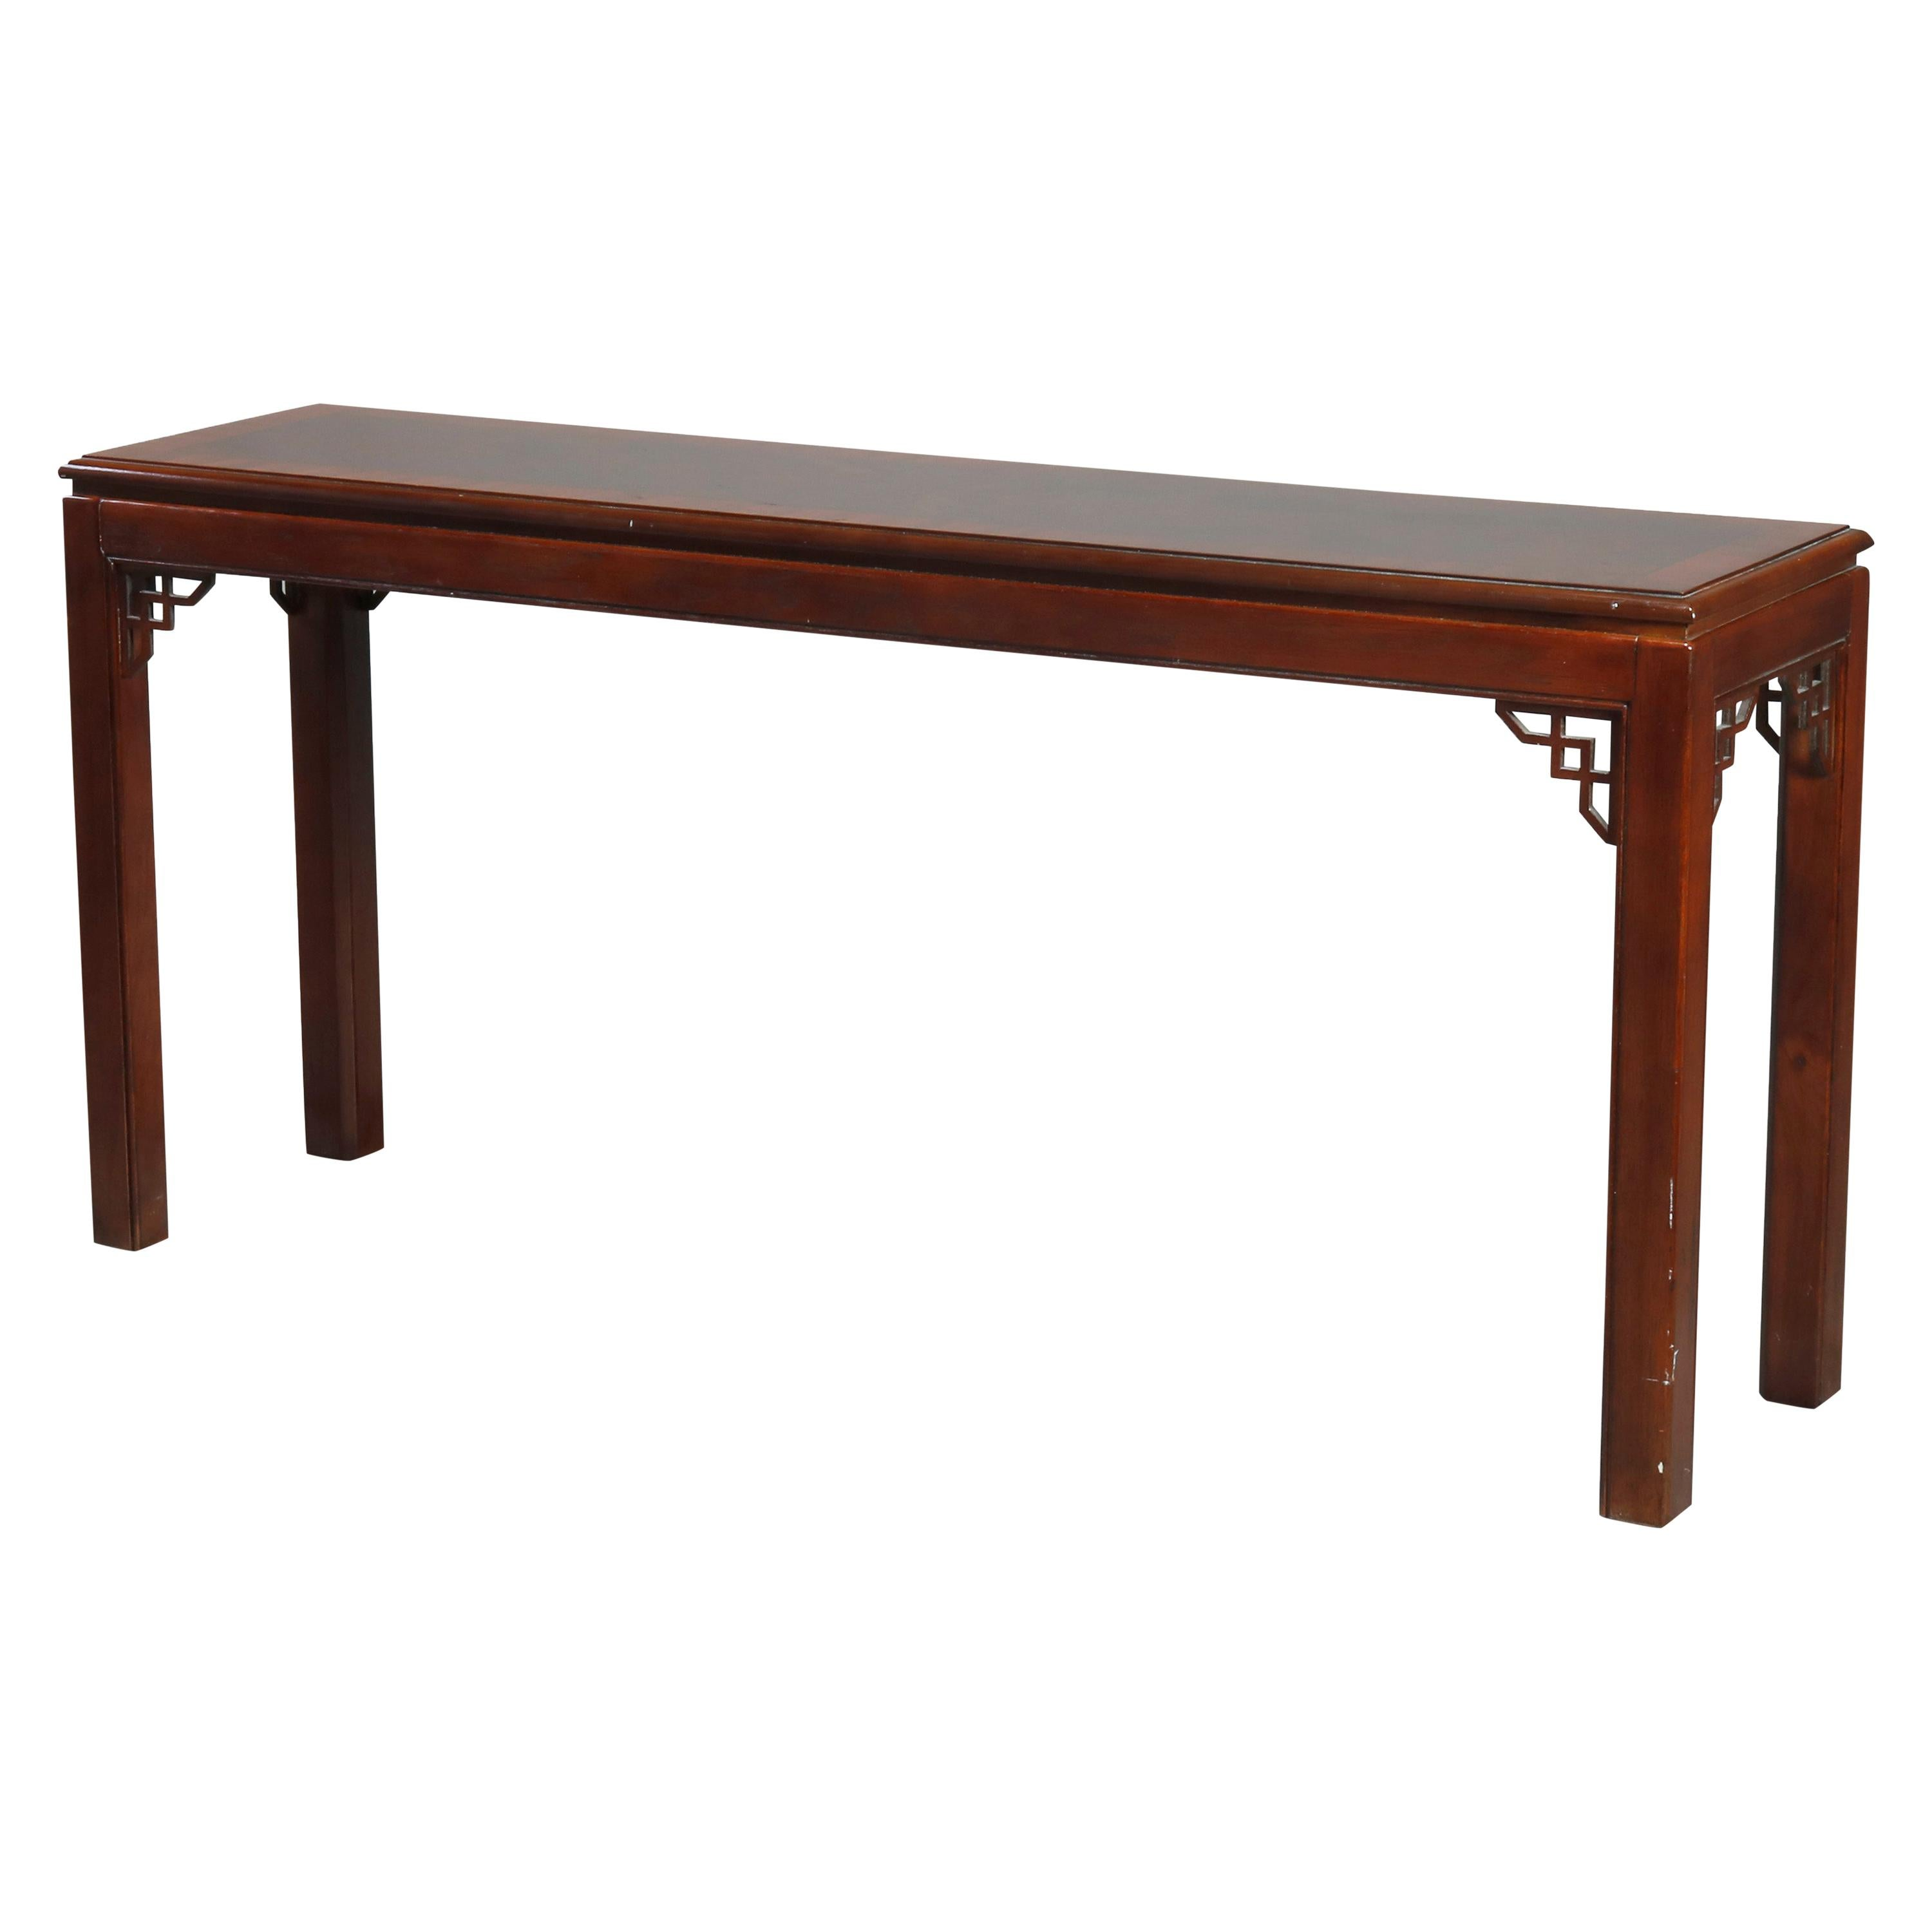 Antique Chinese Chippendale Mahogany Crossbanded Console Table by Drexel, 20th C